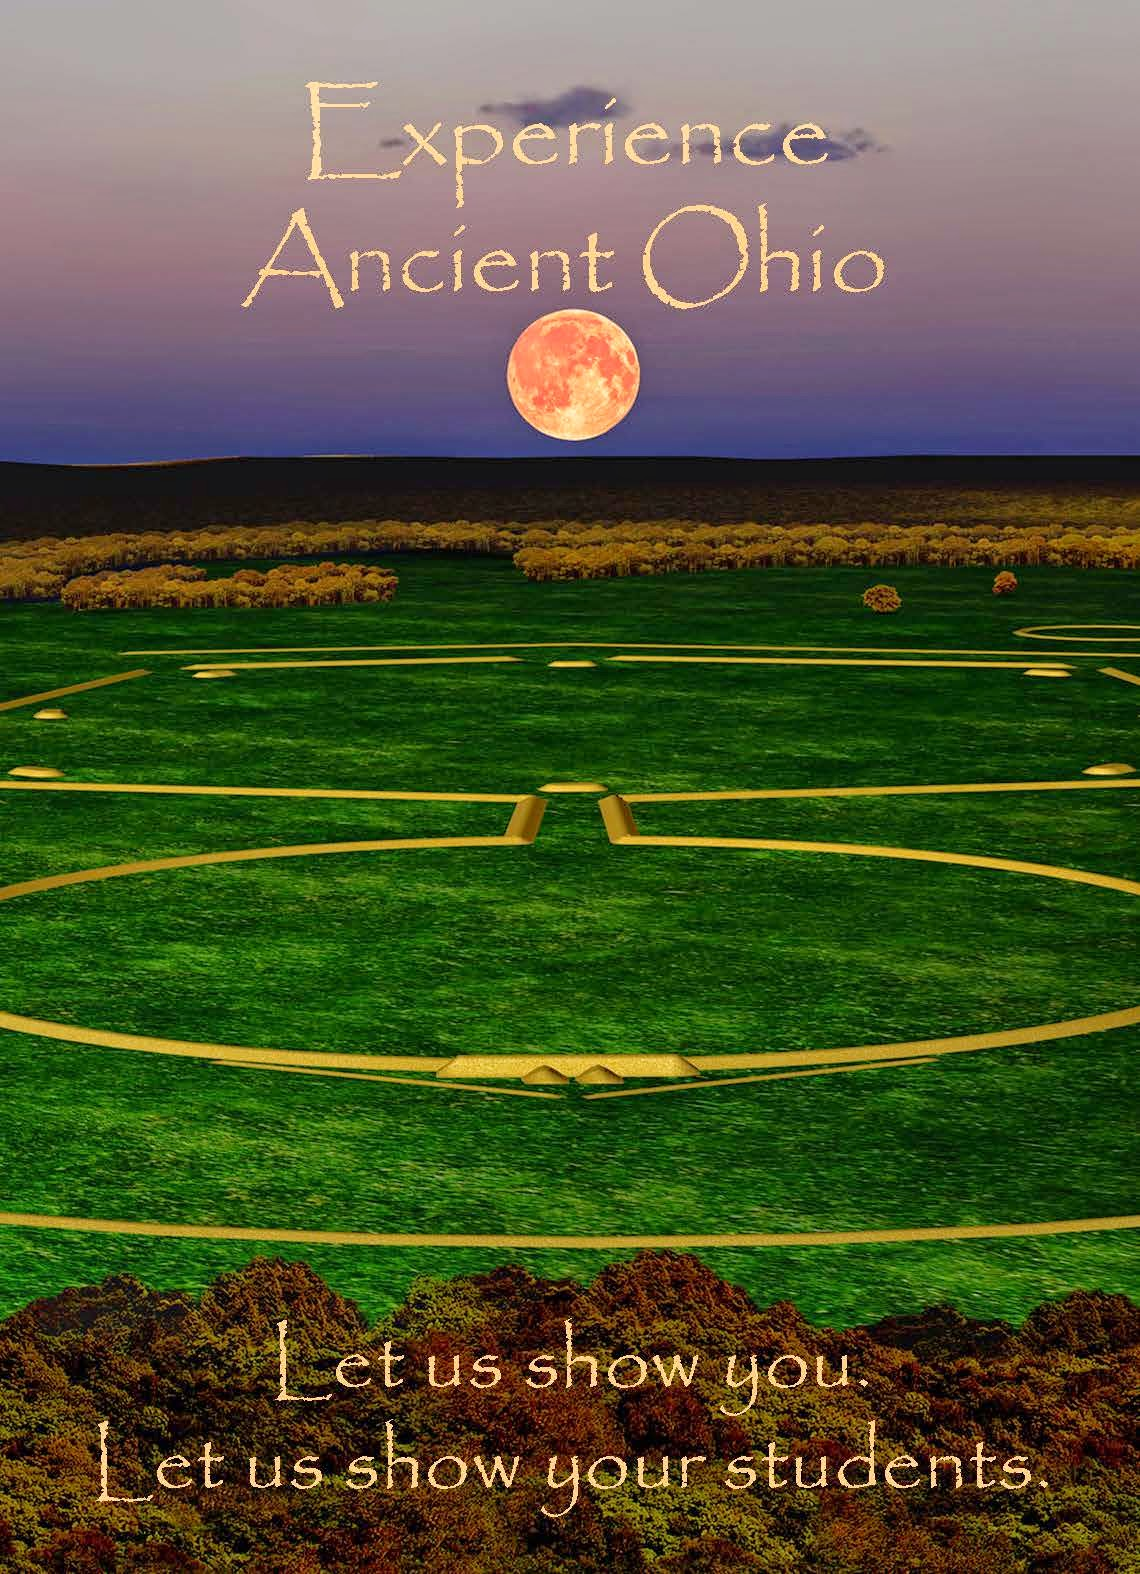 The Ancient Ohio Experience